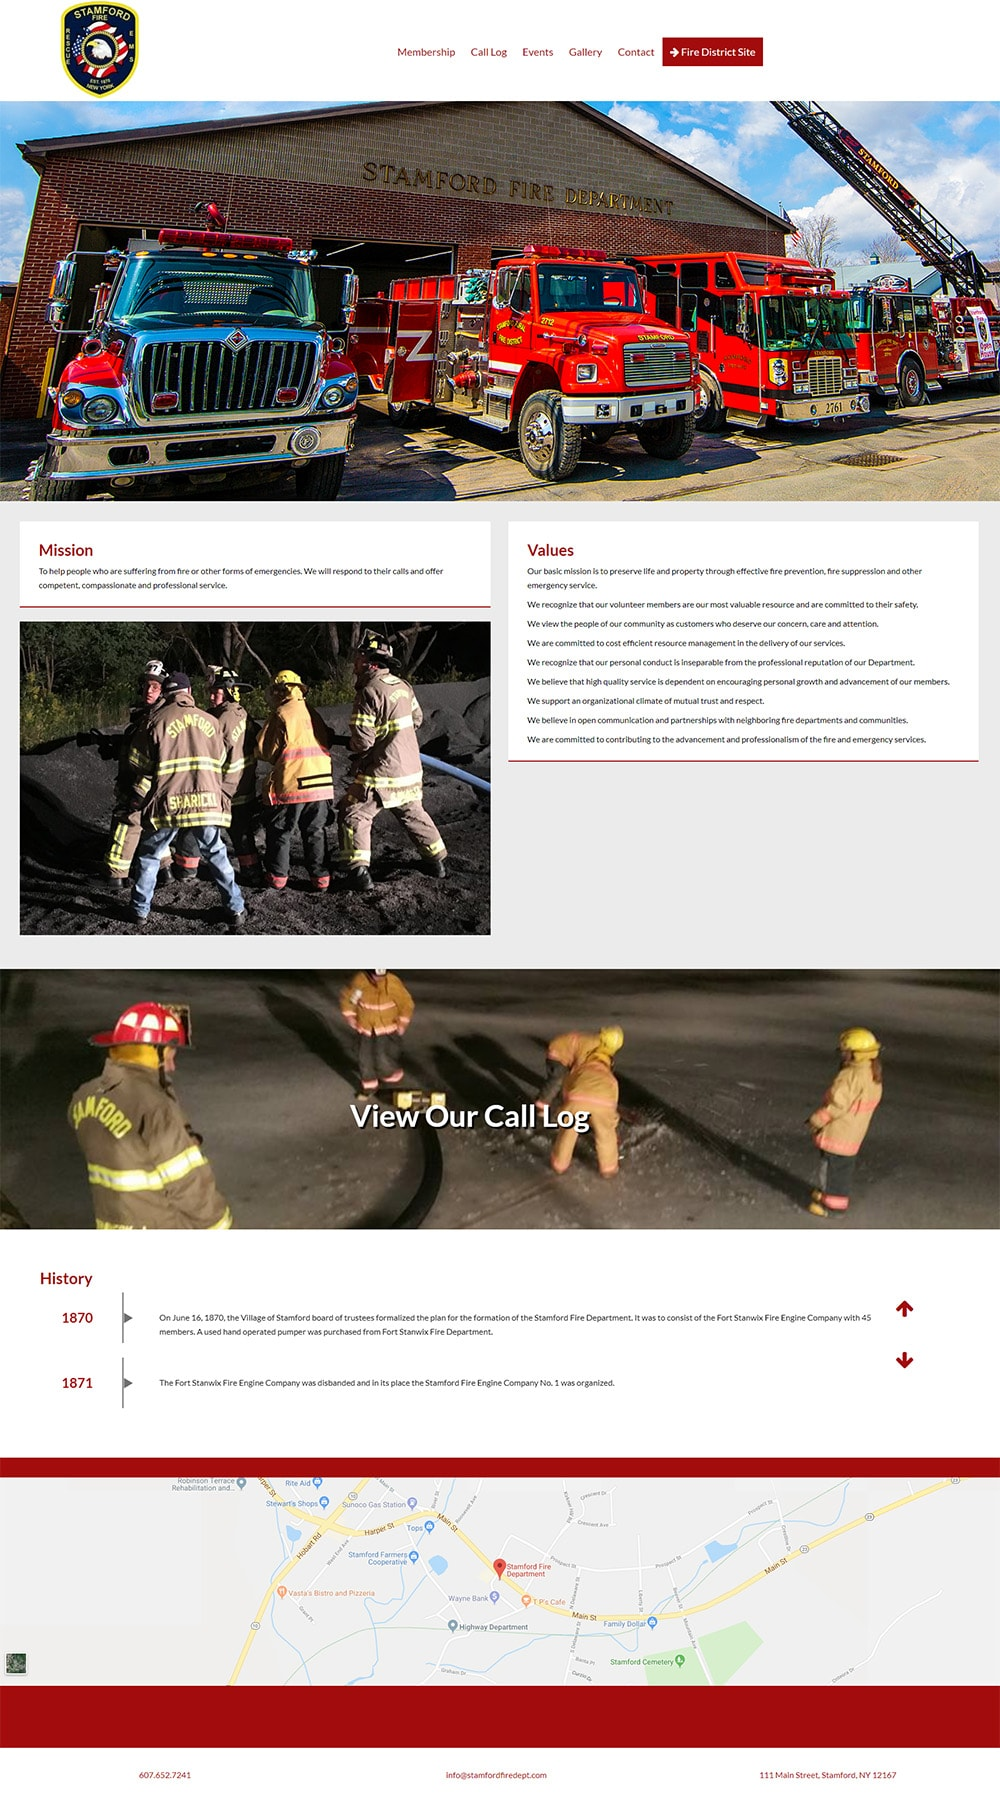 Stamford Fire Department Website